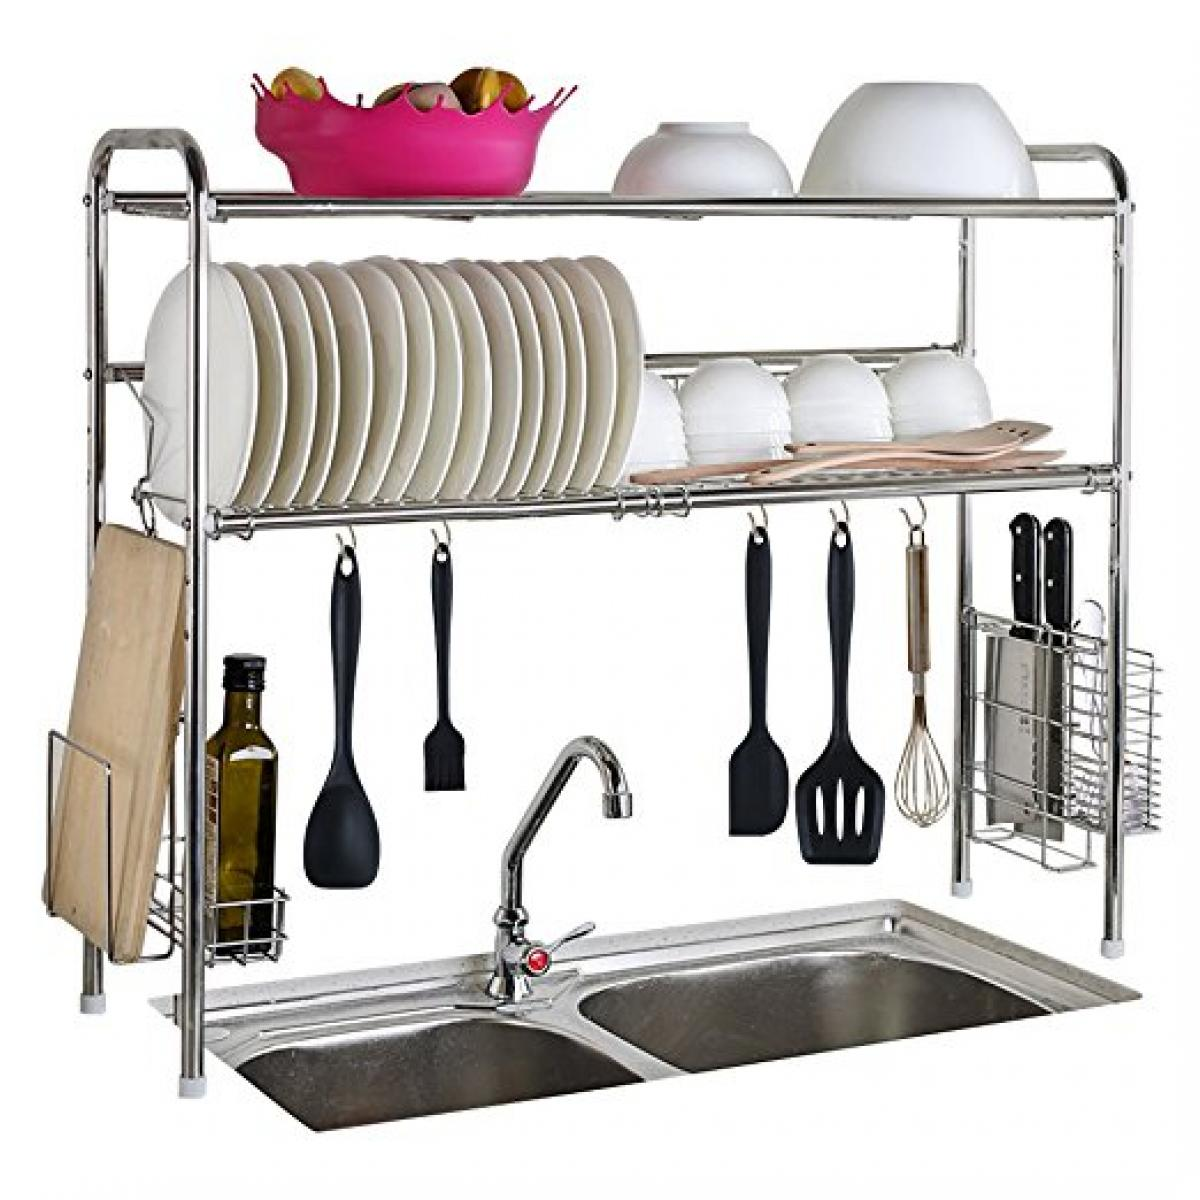 Stainless Steel Sink Storage Shelf